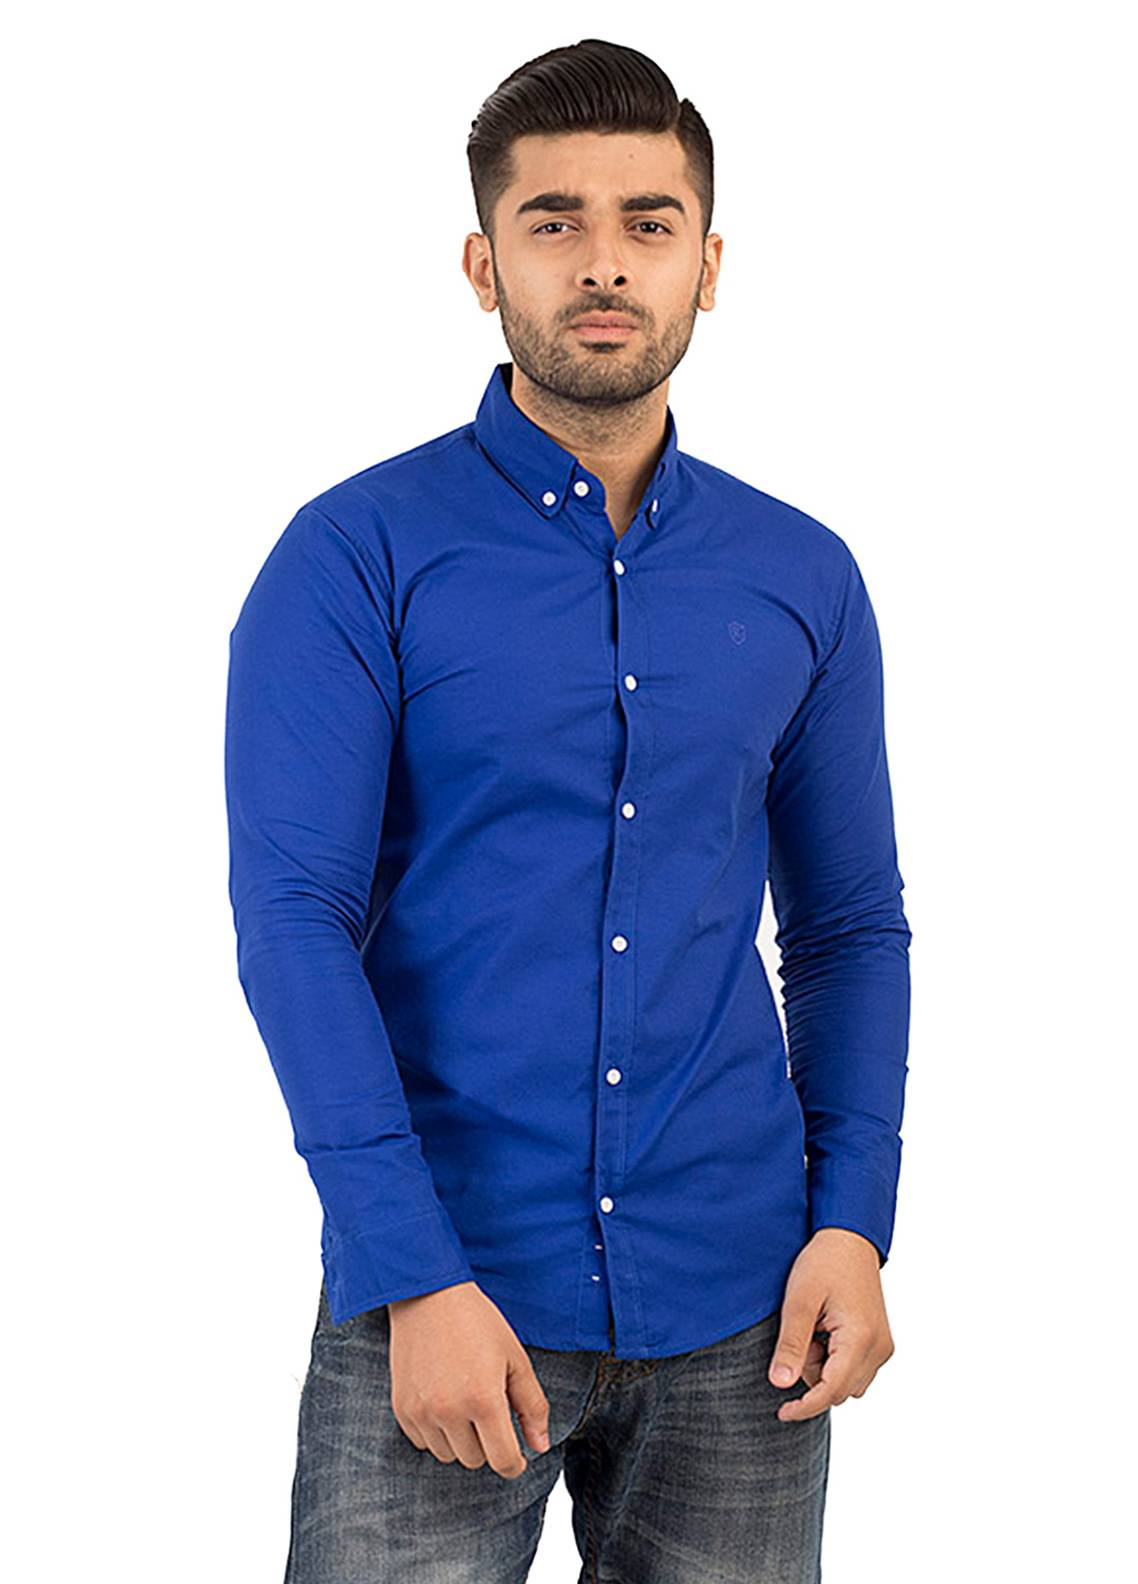 Shahzeb Saeed Cotton Casual Shirts for Men - Royal Blue CSW-138